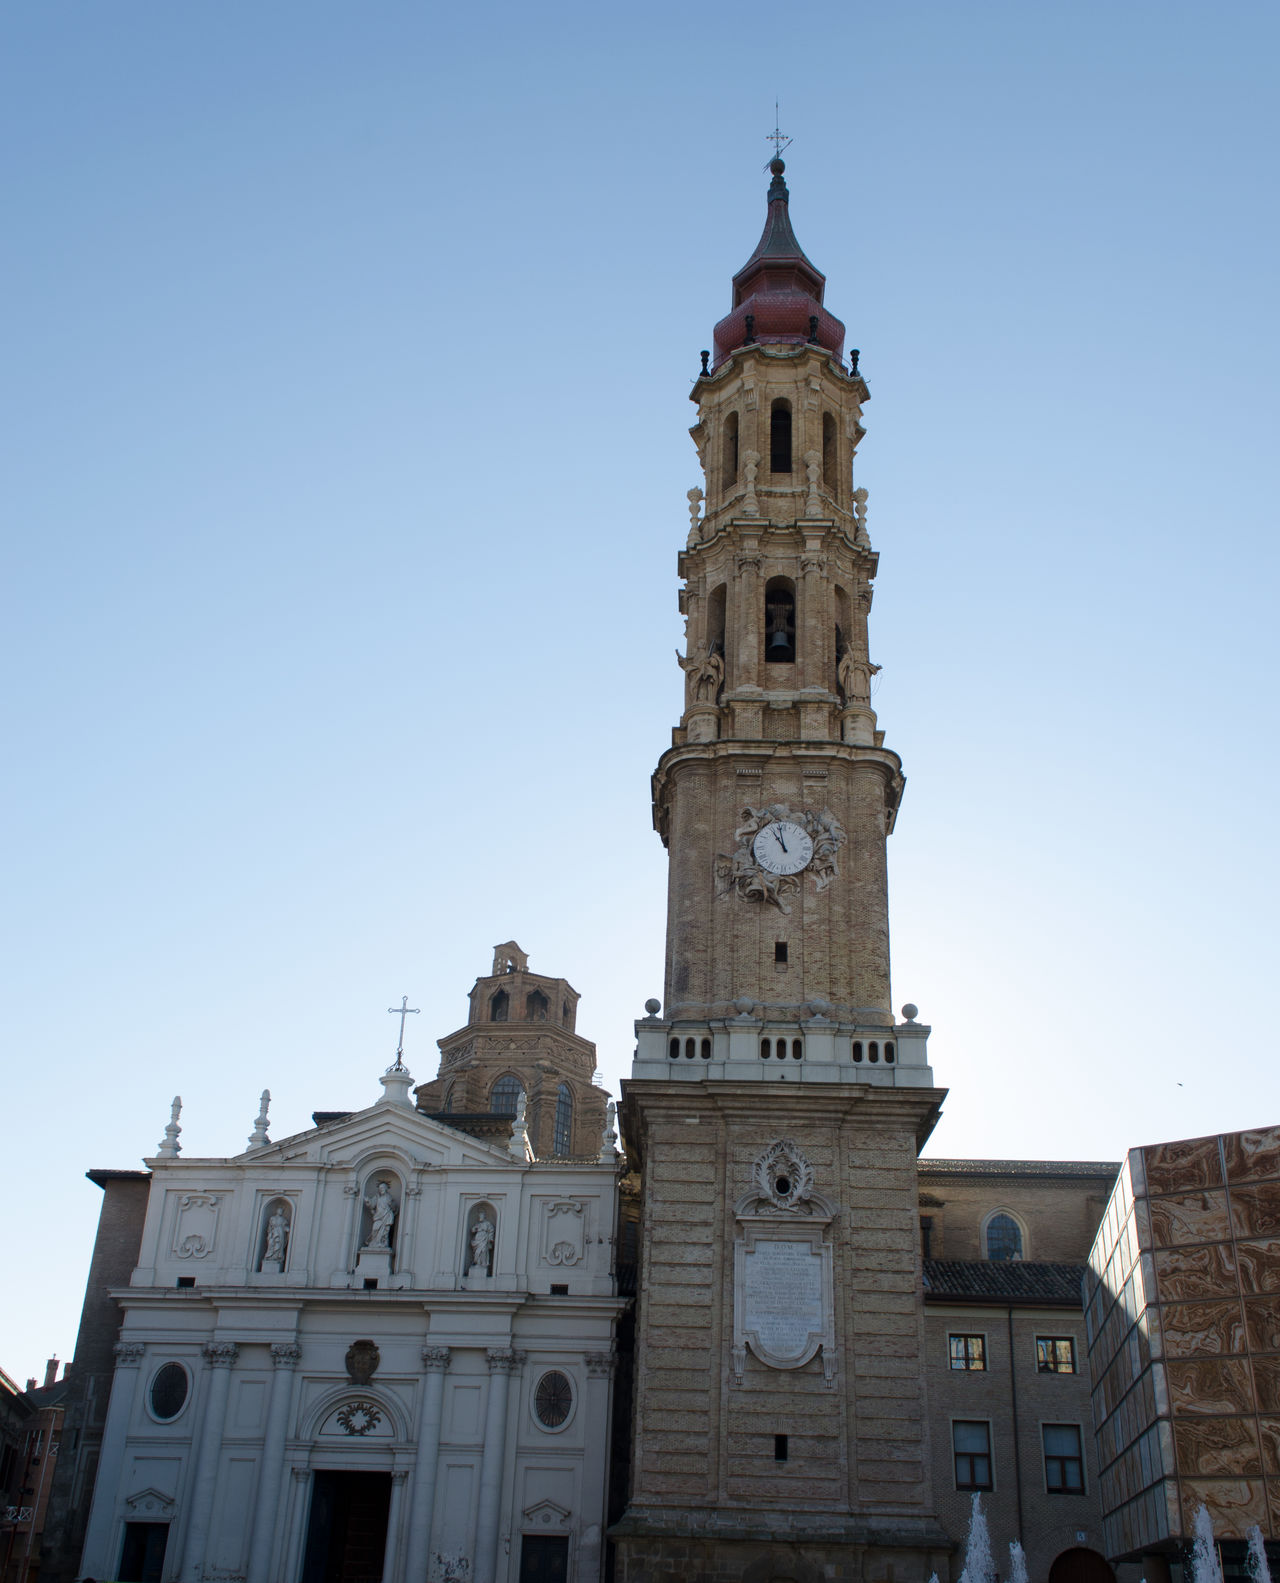 Catedral de la Seo. 2017 Architecture Building Exterior Built Structure Catedral City Clear Sky Clock Tower Day Eddl La Seo No People Outdoors Religion Sky Travel Destinations Zaragoza